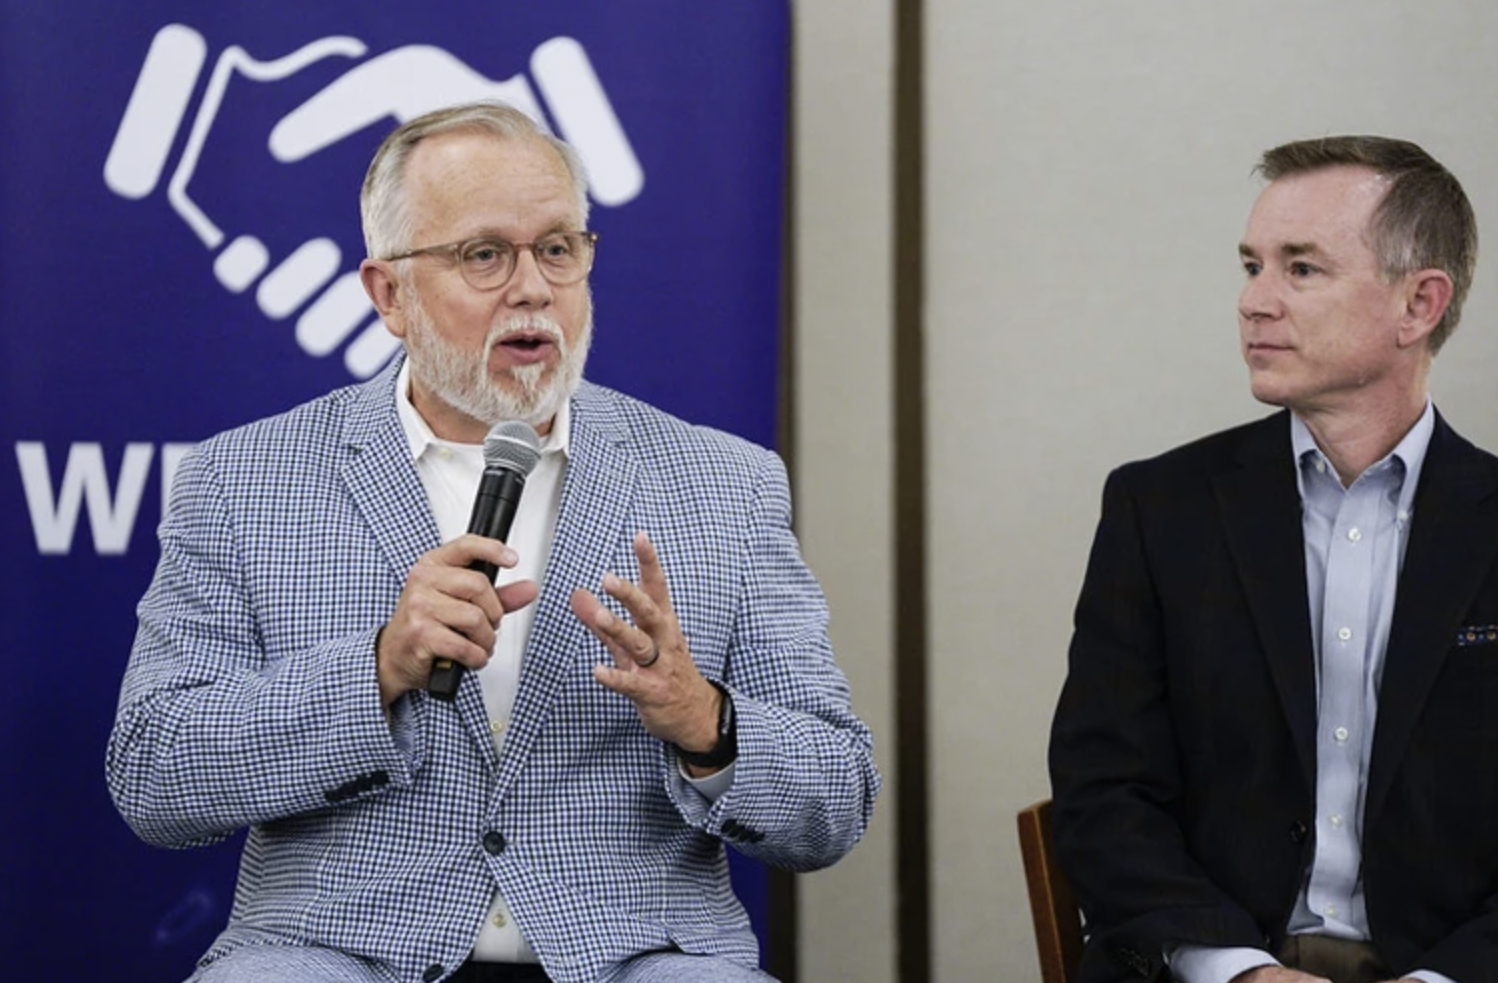 Pastor Ed Litton vows to 'build bridges, not walls' in new role as SBC president